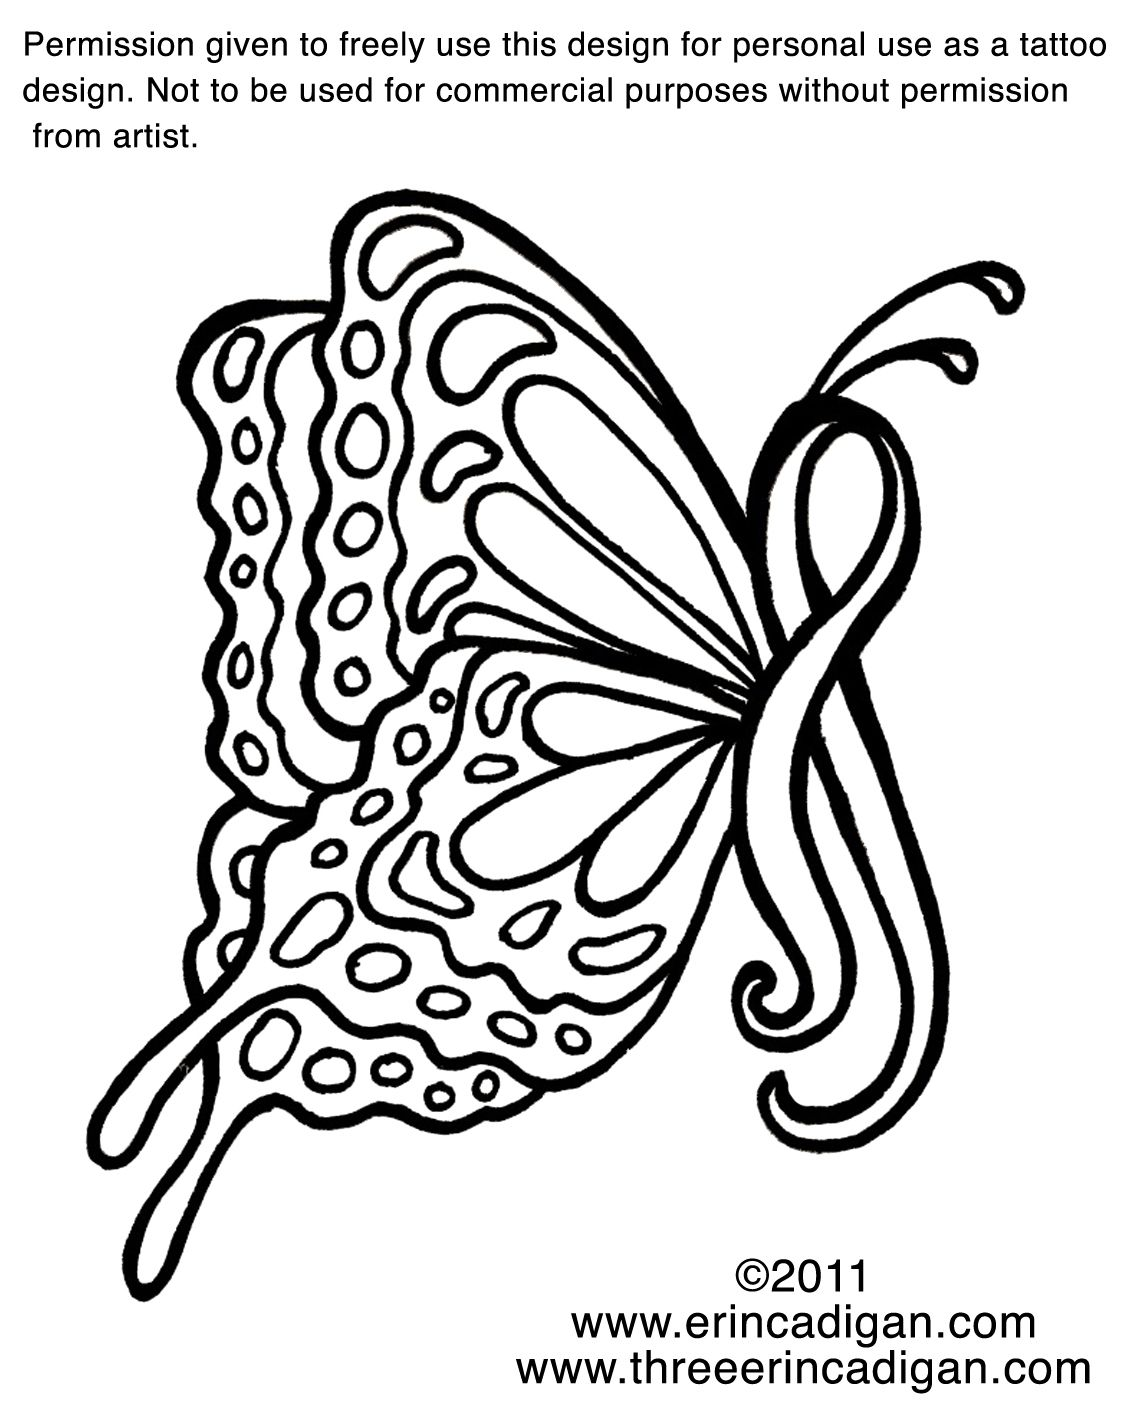 Breast Cancer Awareness Month – free tattoo designs | Pinterest ...